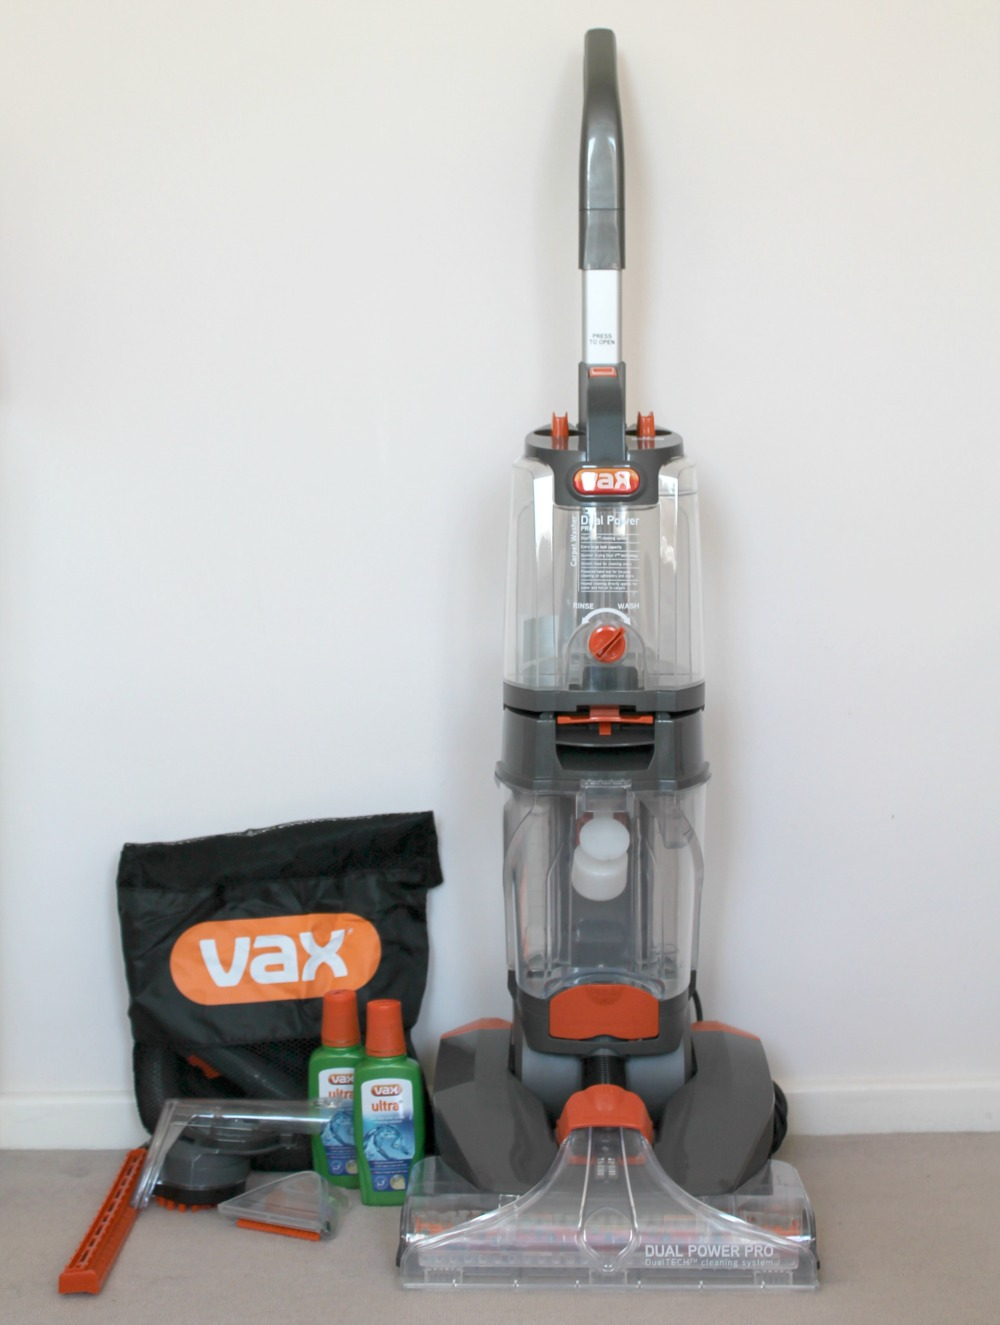 Review Vax Dual Power Pro Carpet Cleaner Quite Frankly She Said